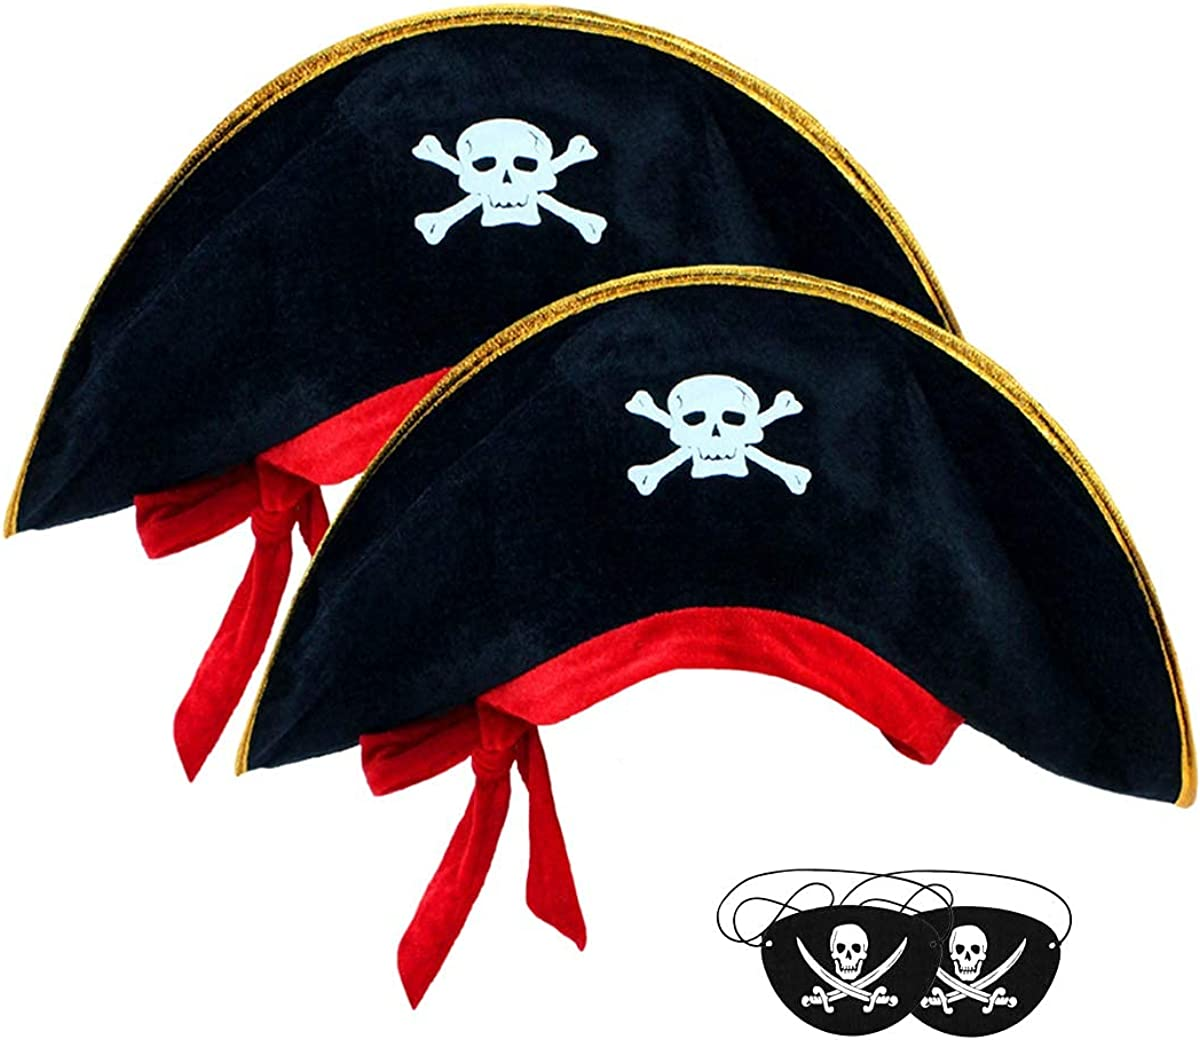 Attention brand 2pcs Halloween Pirate Hat With P Eye Classic Skull Patch- Max 89% OFF